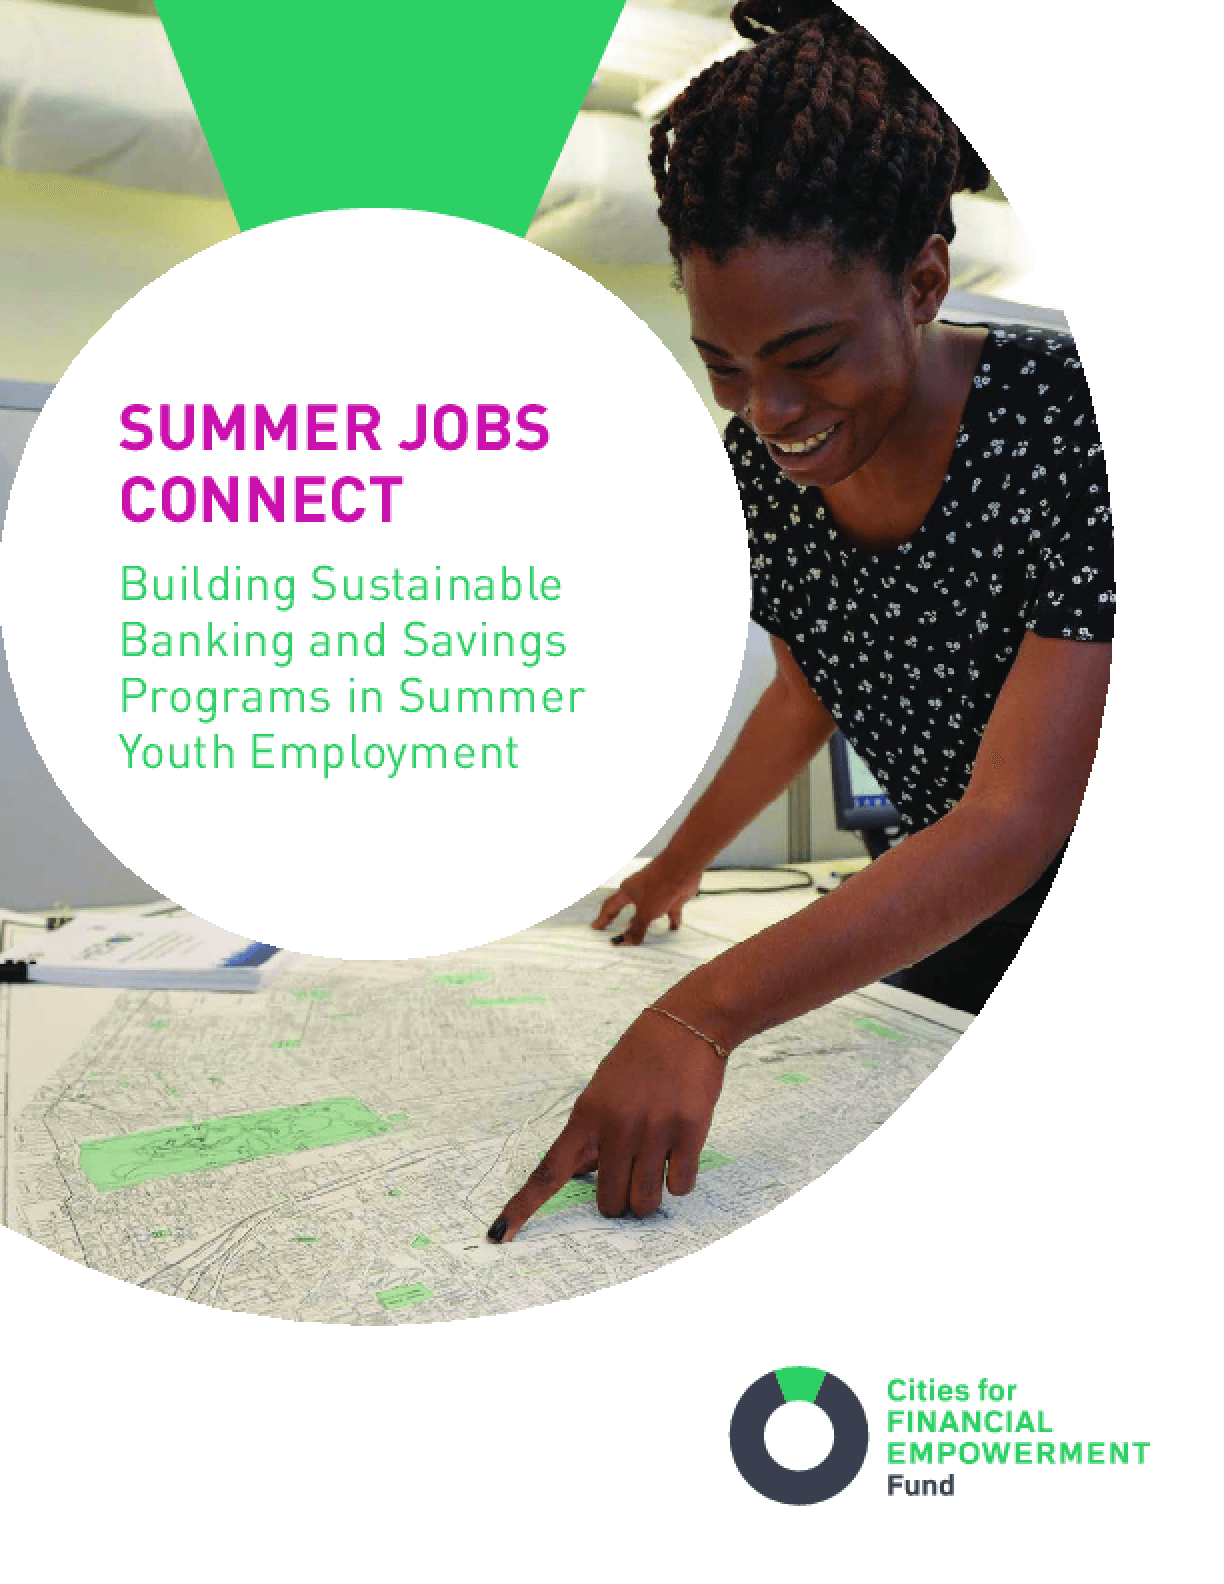 Summer Jobs Connect: Building Sustainable Banking and Savings Programs in Summer Youth Employment